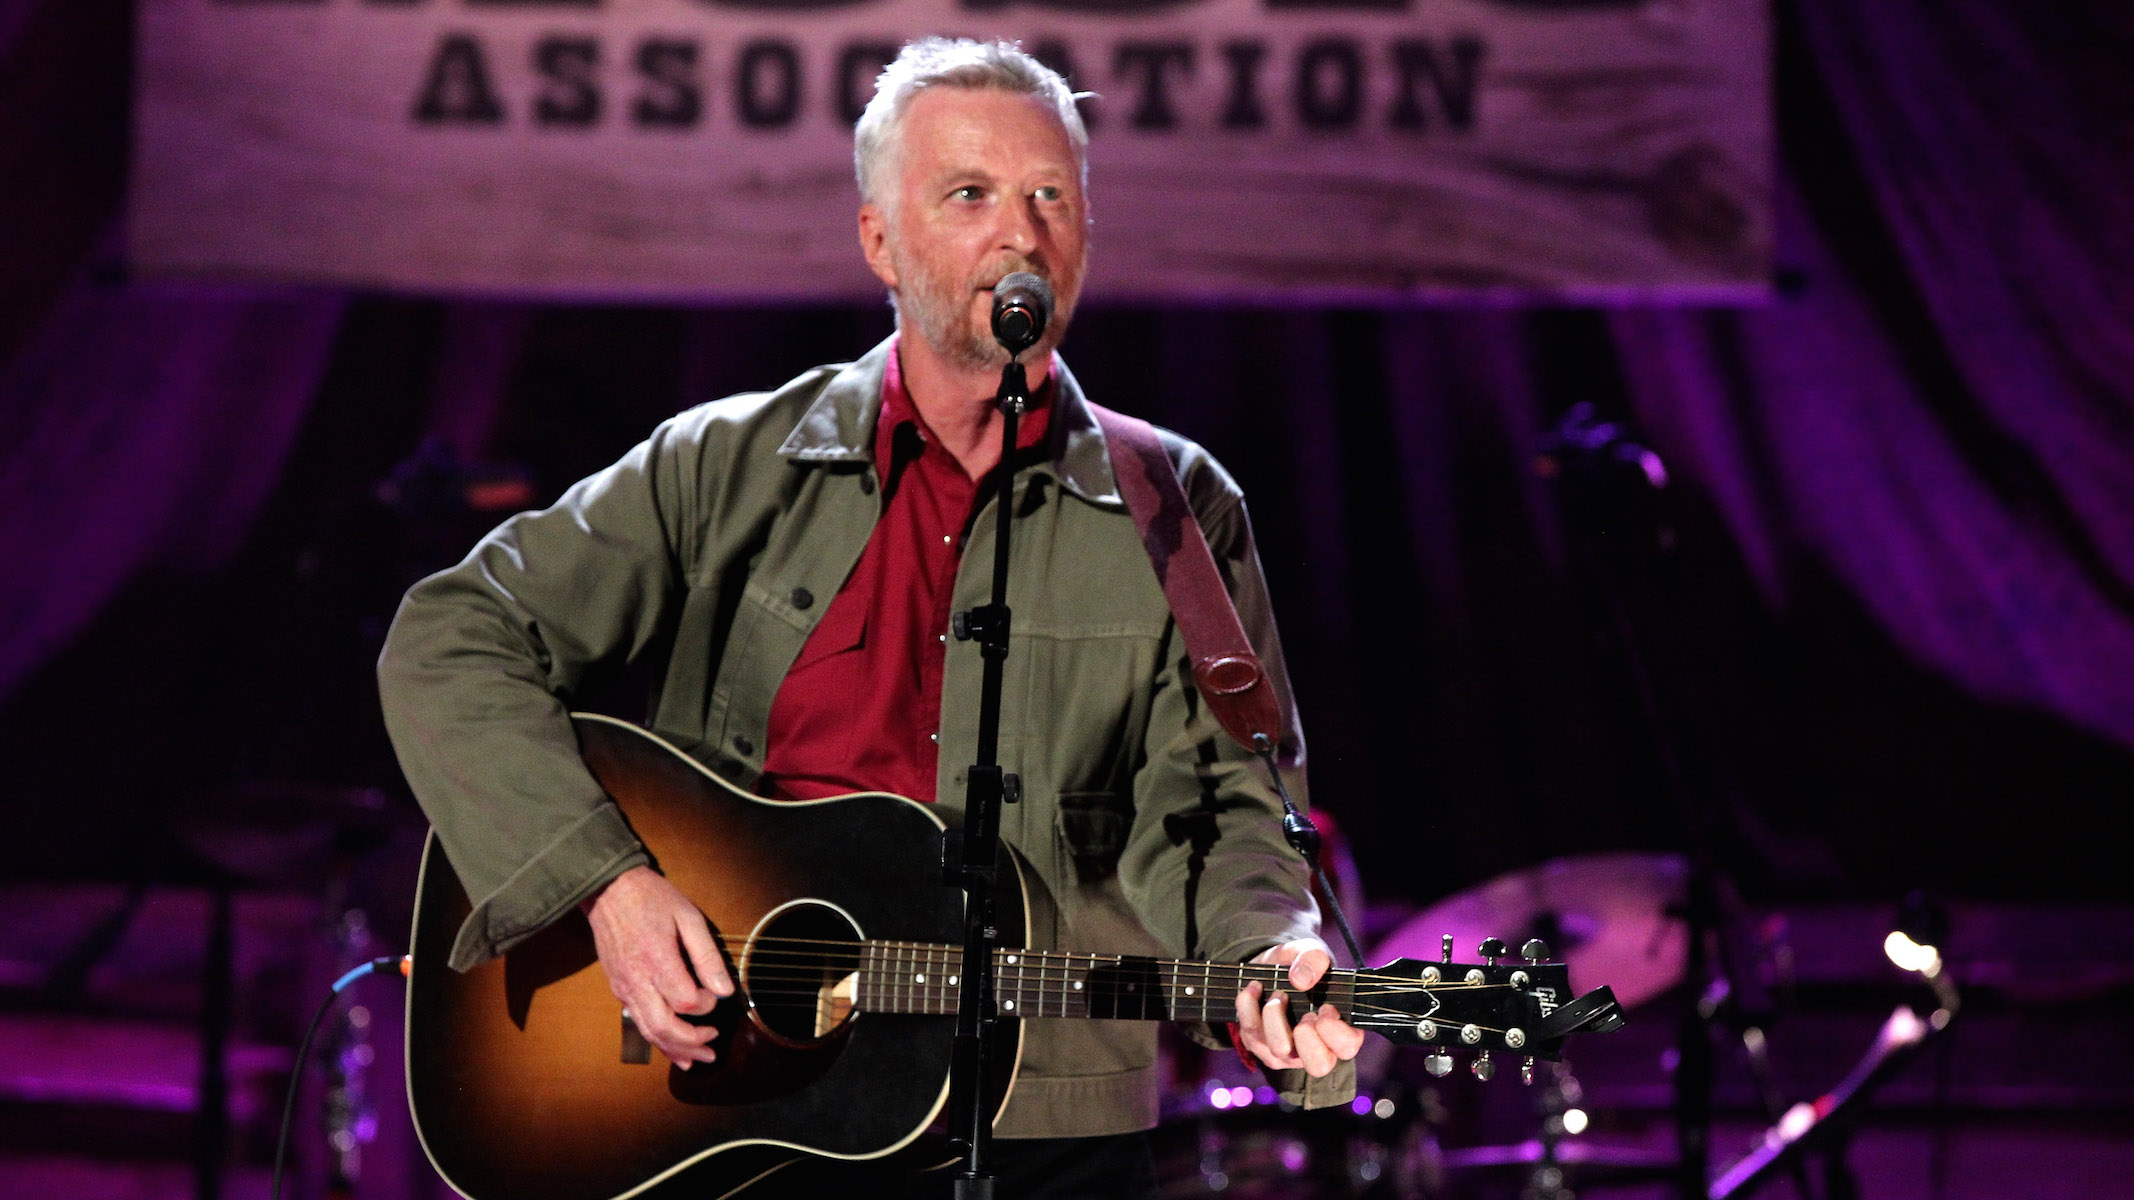 Hear Billy Bragg Perform at Daytrotter on This Day in 2013